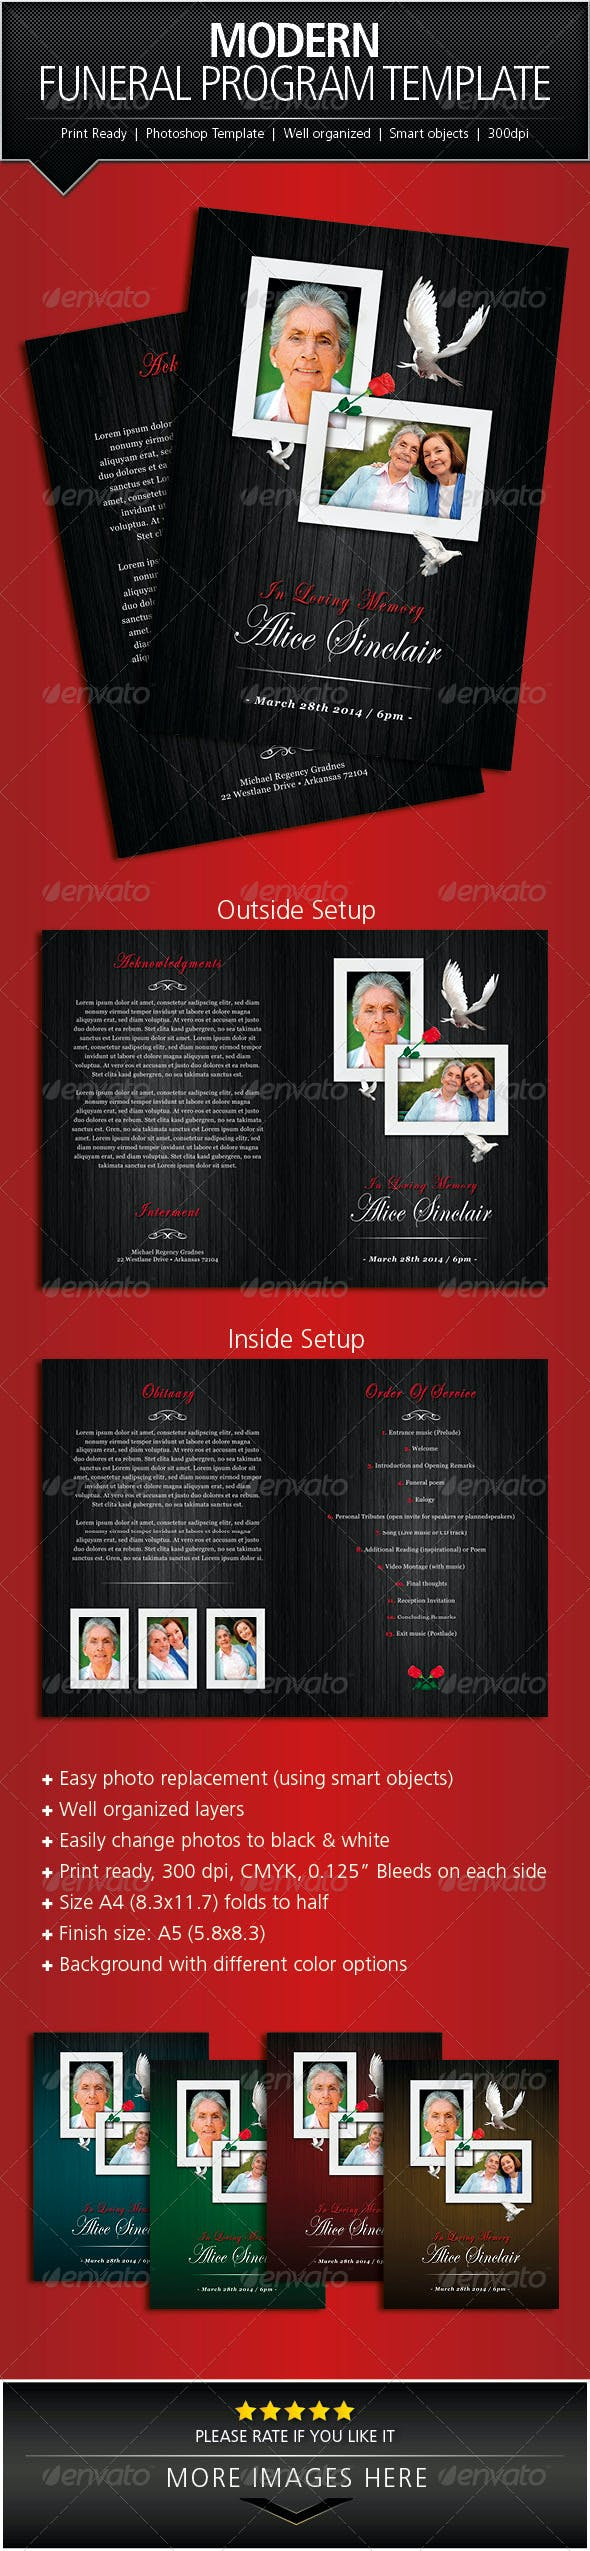 modern funeral program brochure template by designs4u graphicriver